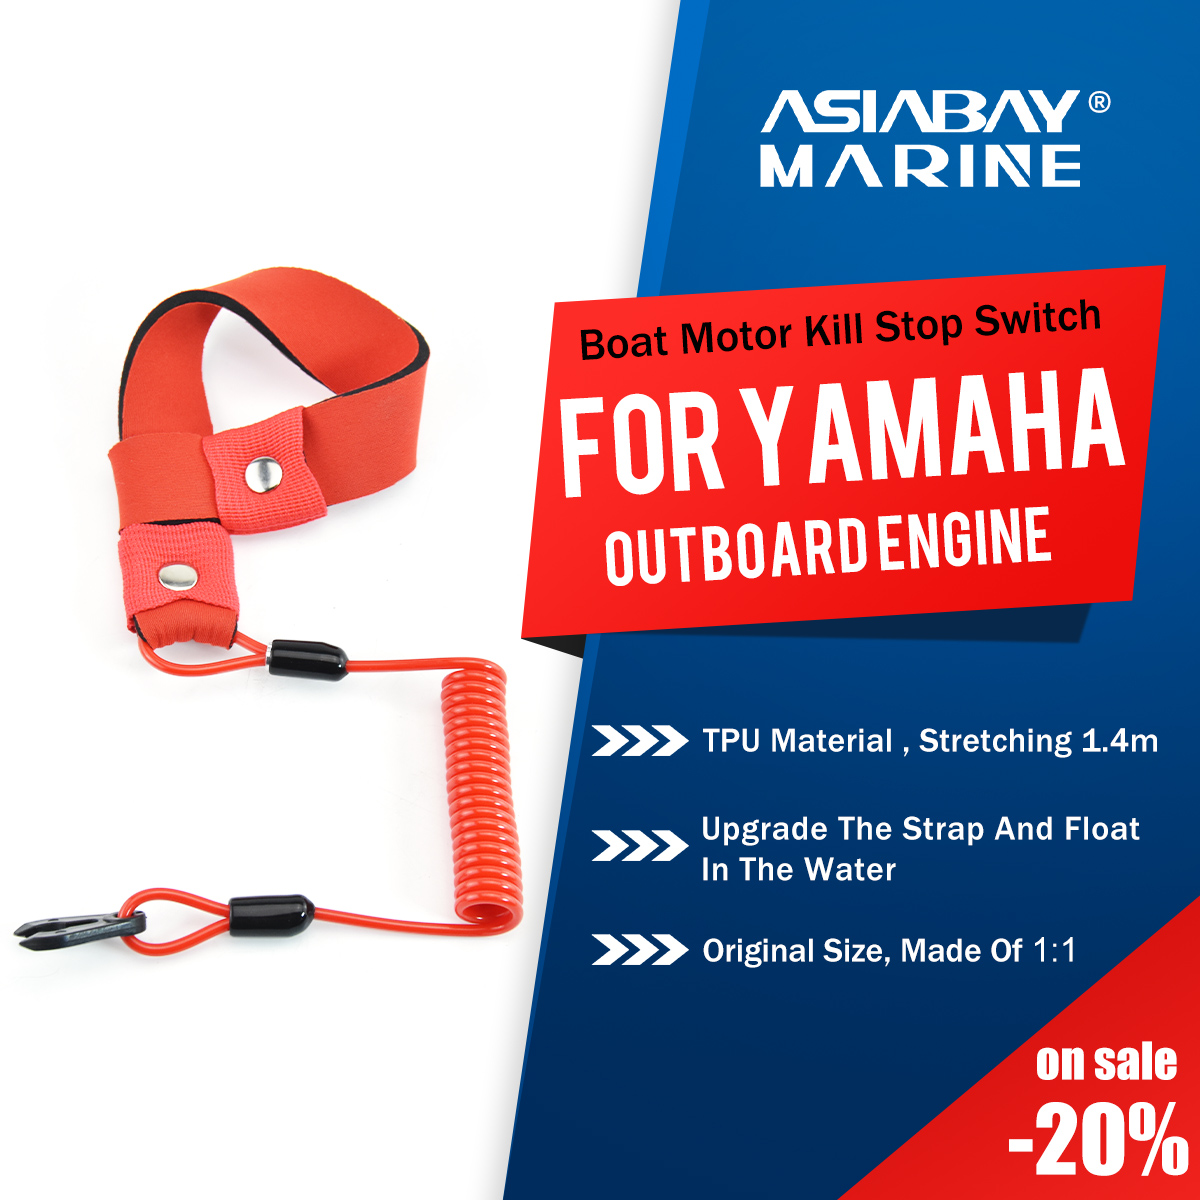 Yamaha Marine Outboard Engine Boat Motor Kill Stop Switch For 2-425hp Key Rope Safety Lanyard Tether